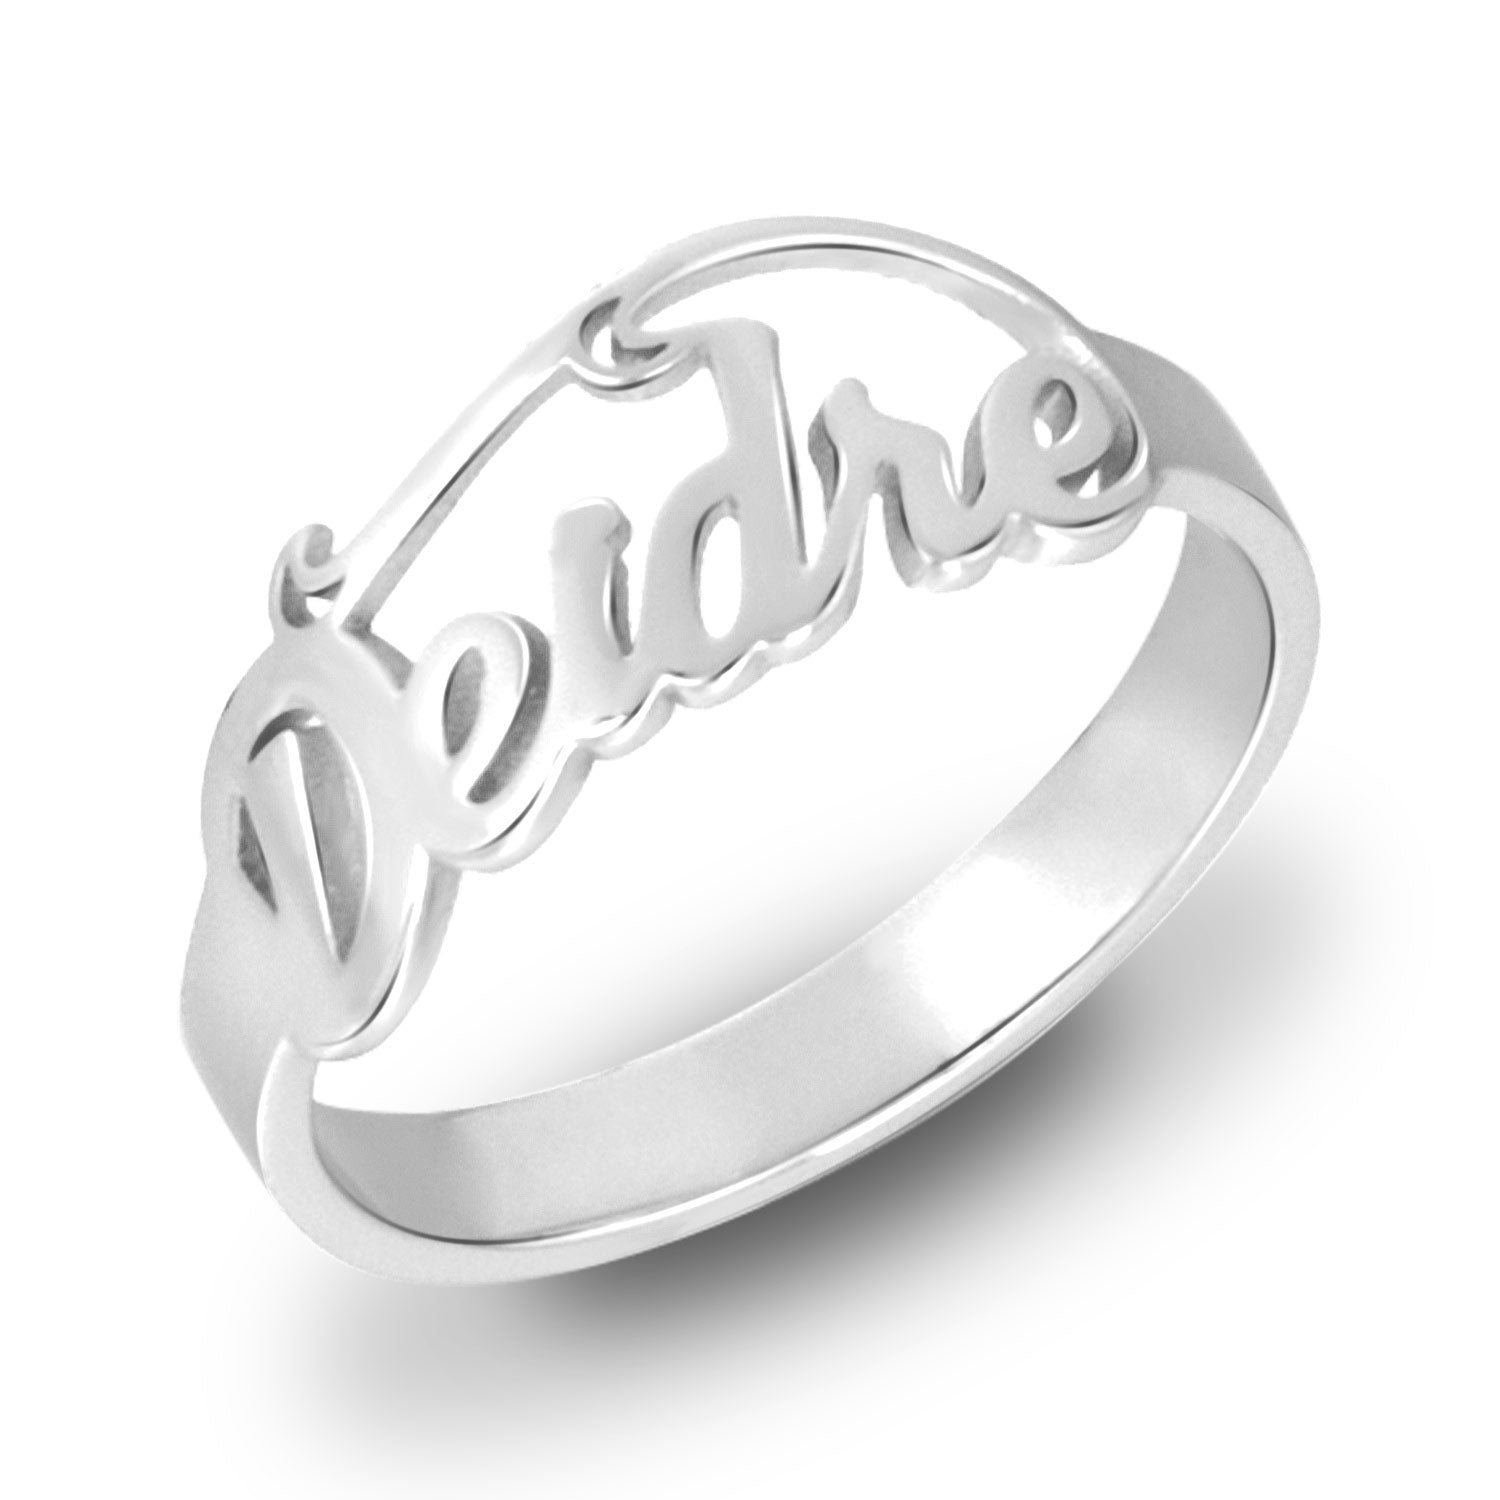 18K Gold Plated Personalized Name Ring